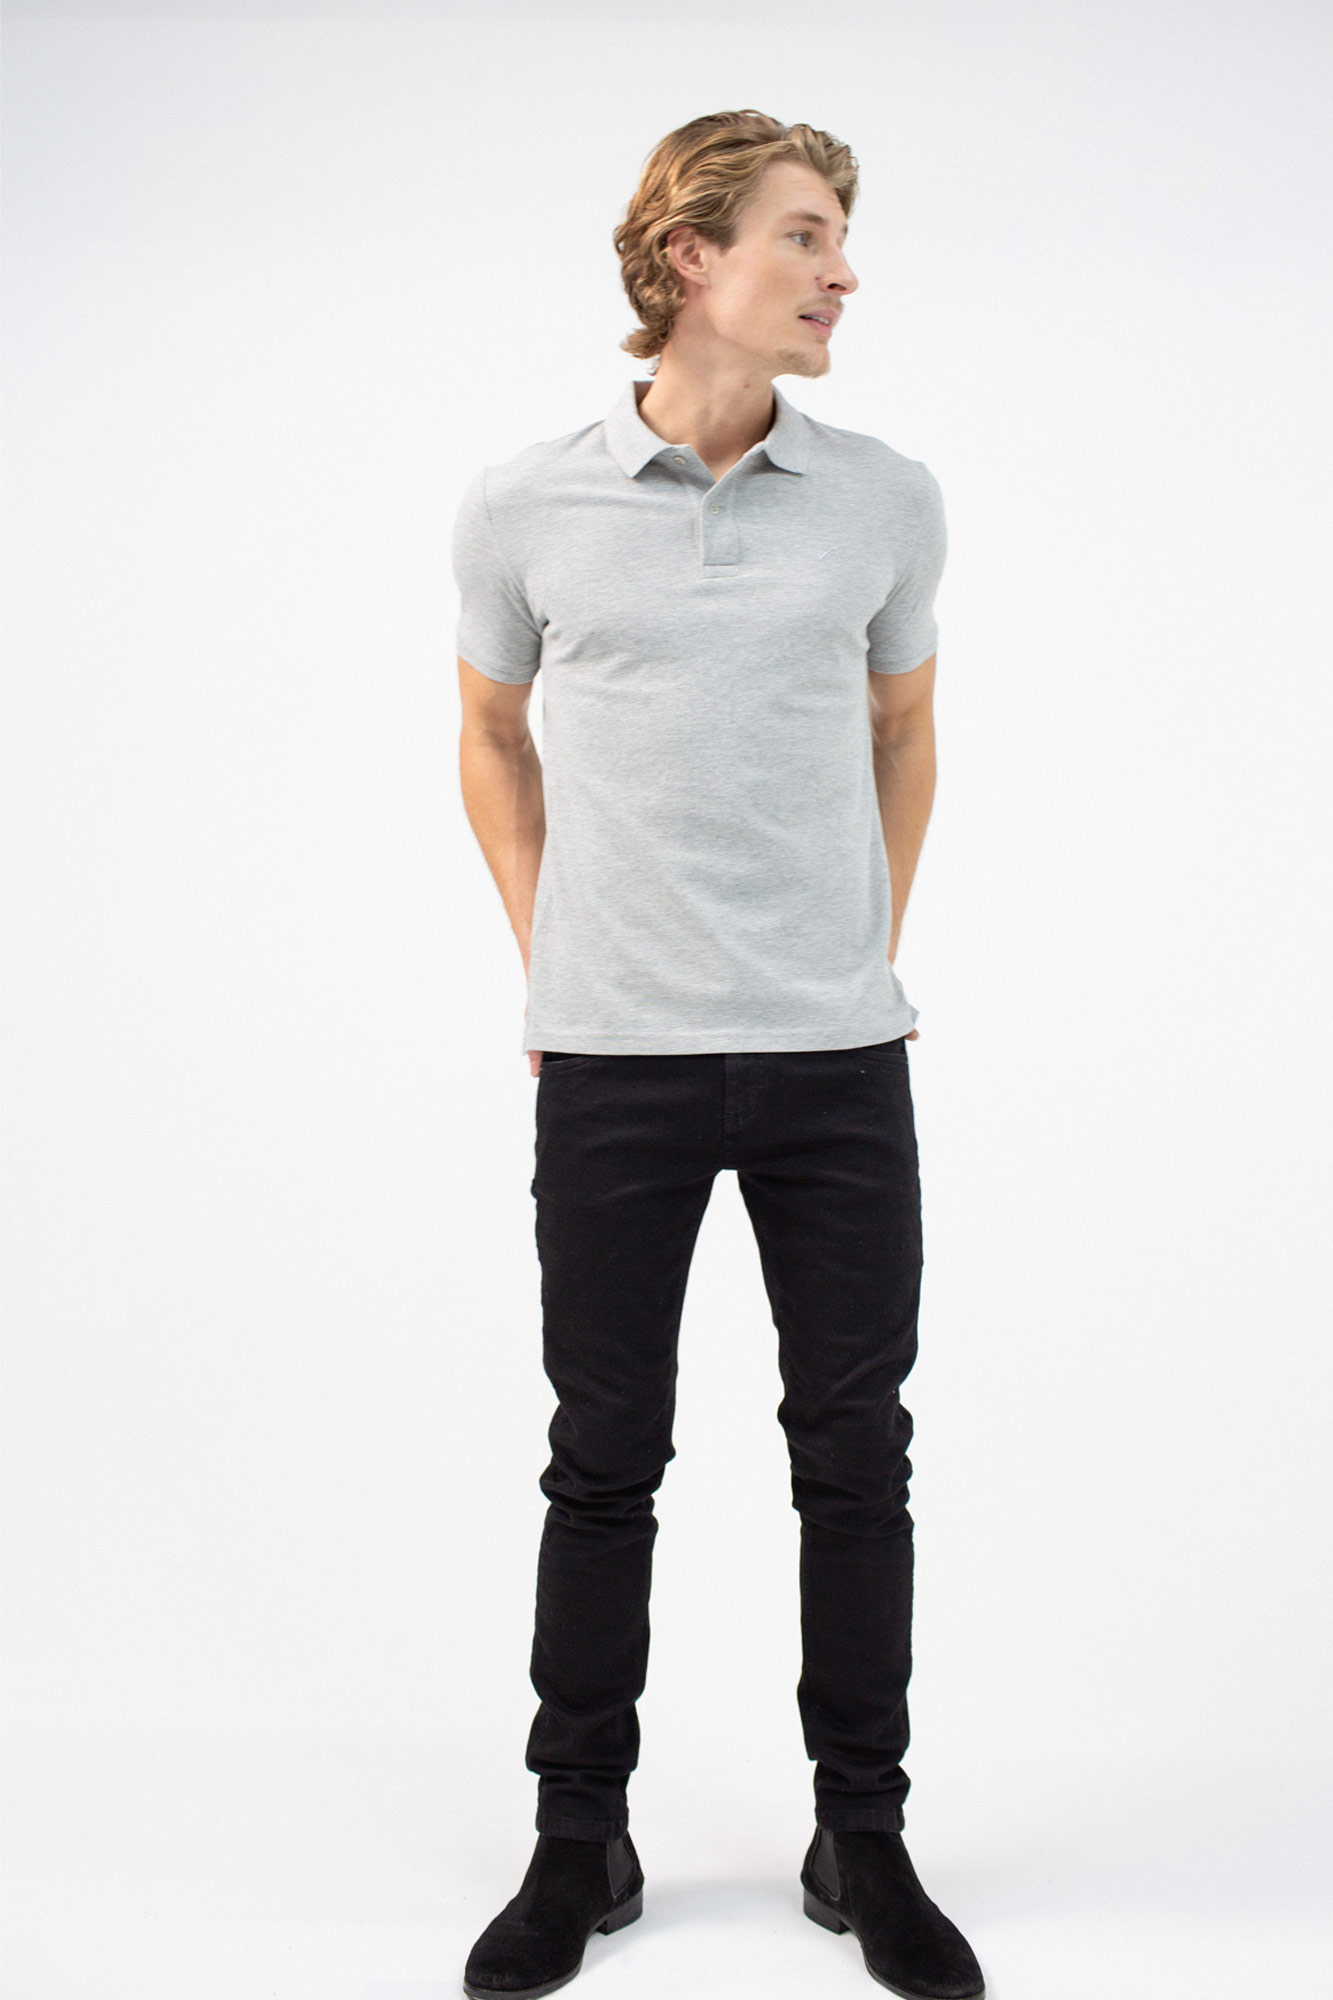 BenedictRaven Studio 043 1 - Club Polo Shirt Grey